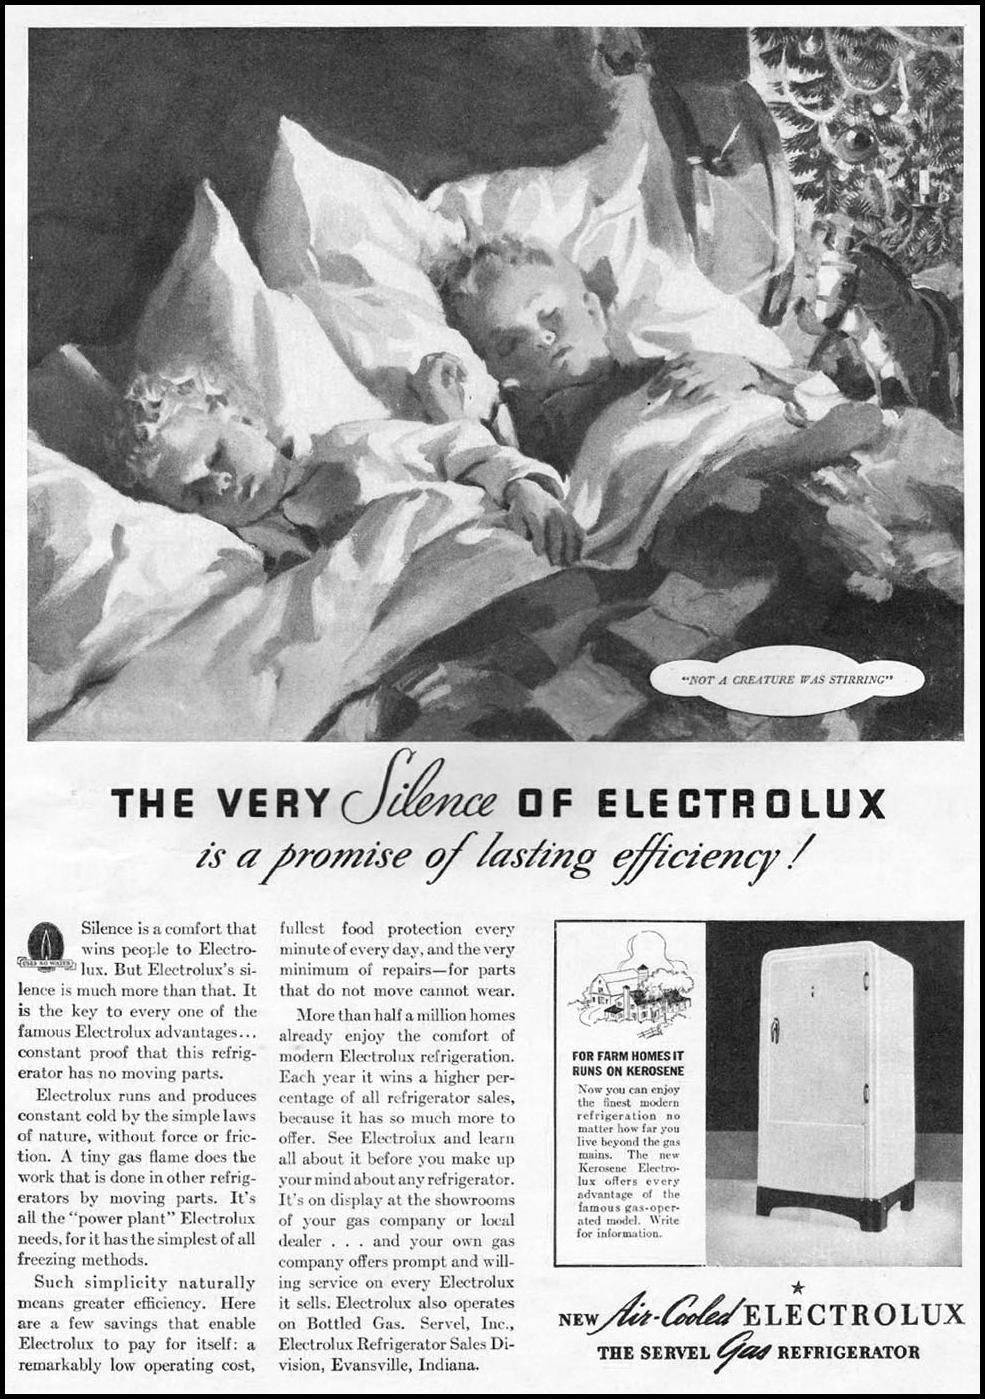 ELECTROLUX REFRIGERATORS GOOD HOUSEKEEPING 12/01/1935 p. 13